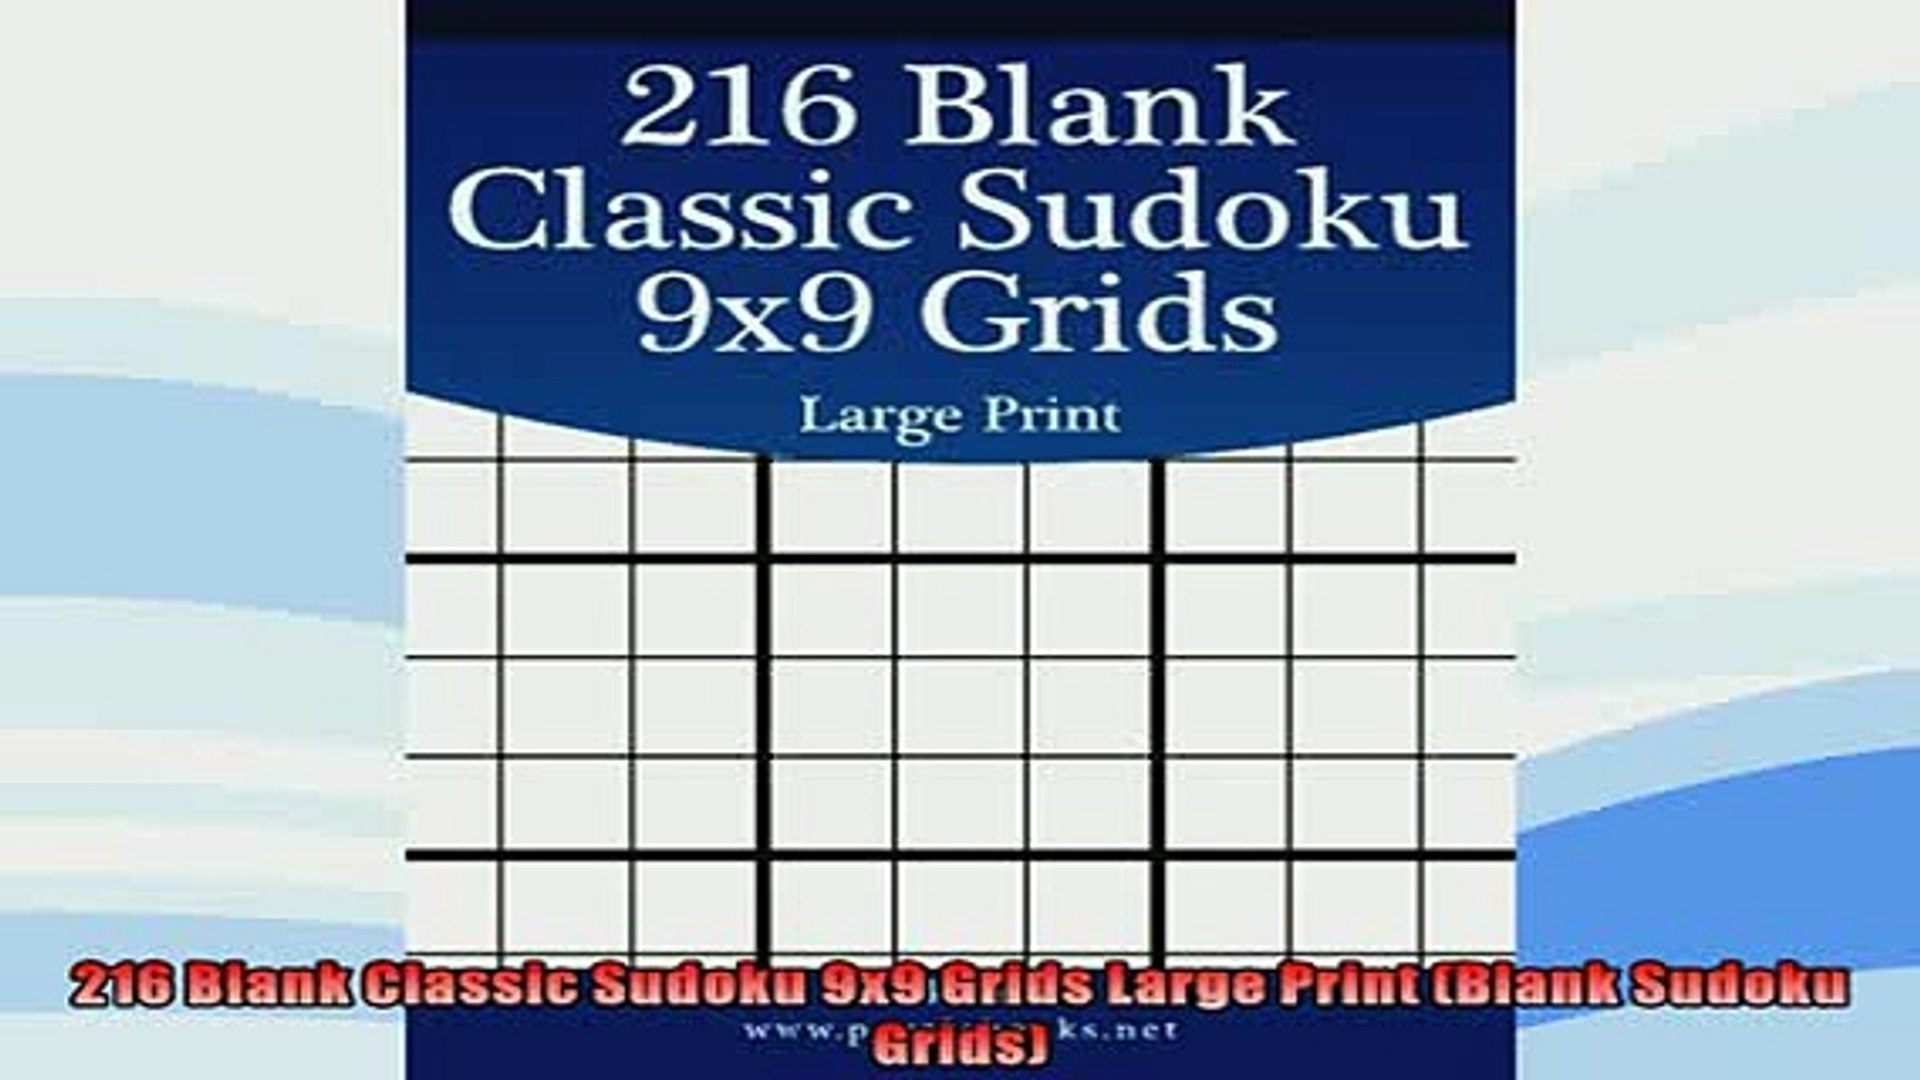 photograph regarding Blank Sudoku Grid Printable named E book On the net 216 Blank Clic Sudoku 9x9 Grids Significant Print Blank Sudoku Grids Guide On the web